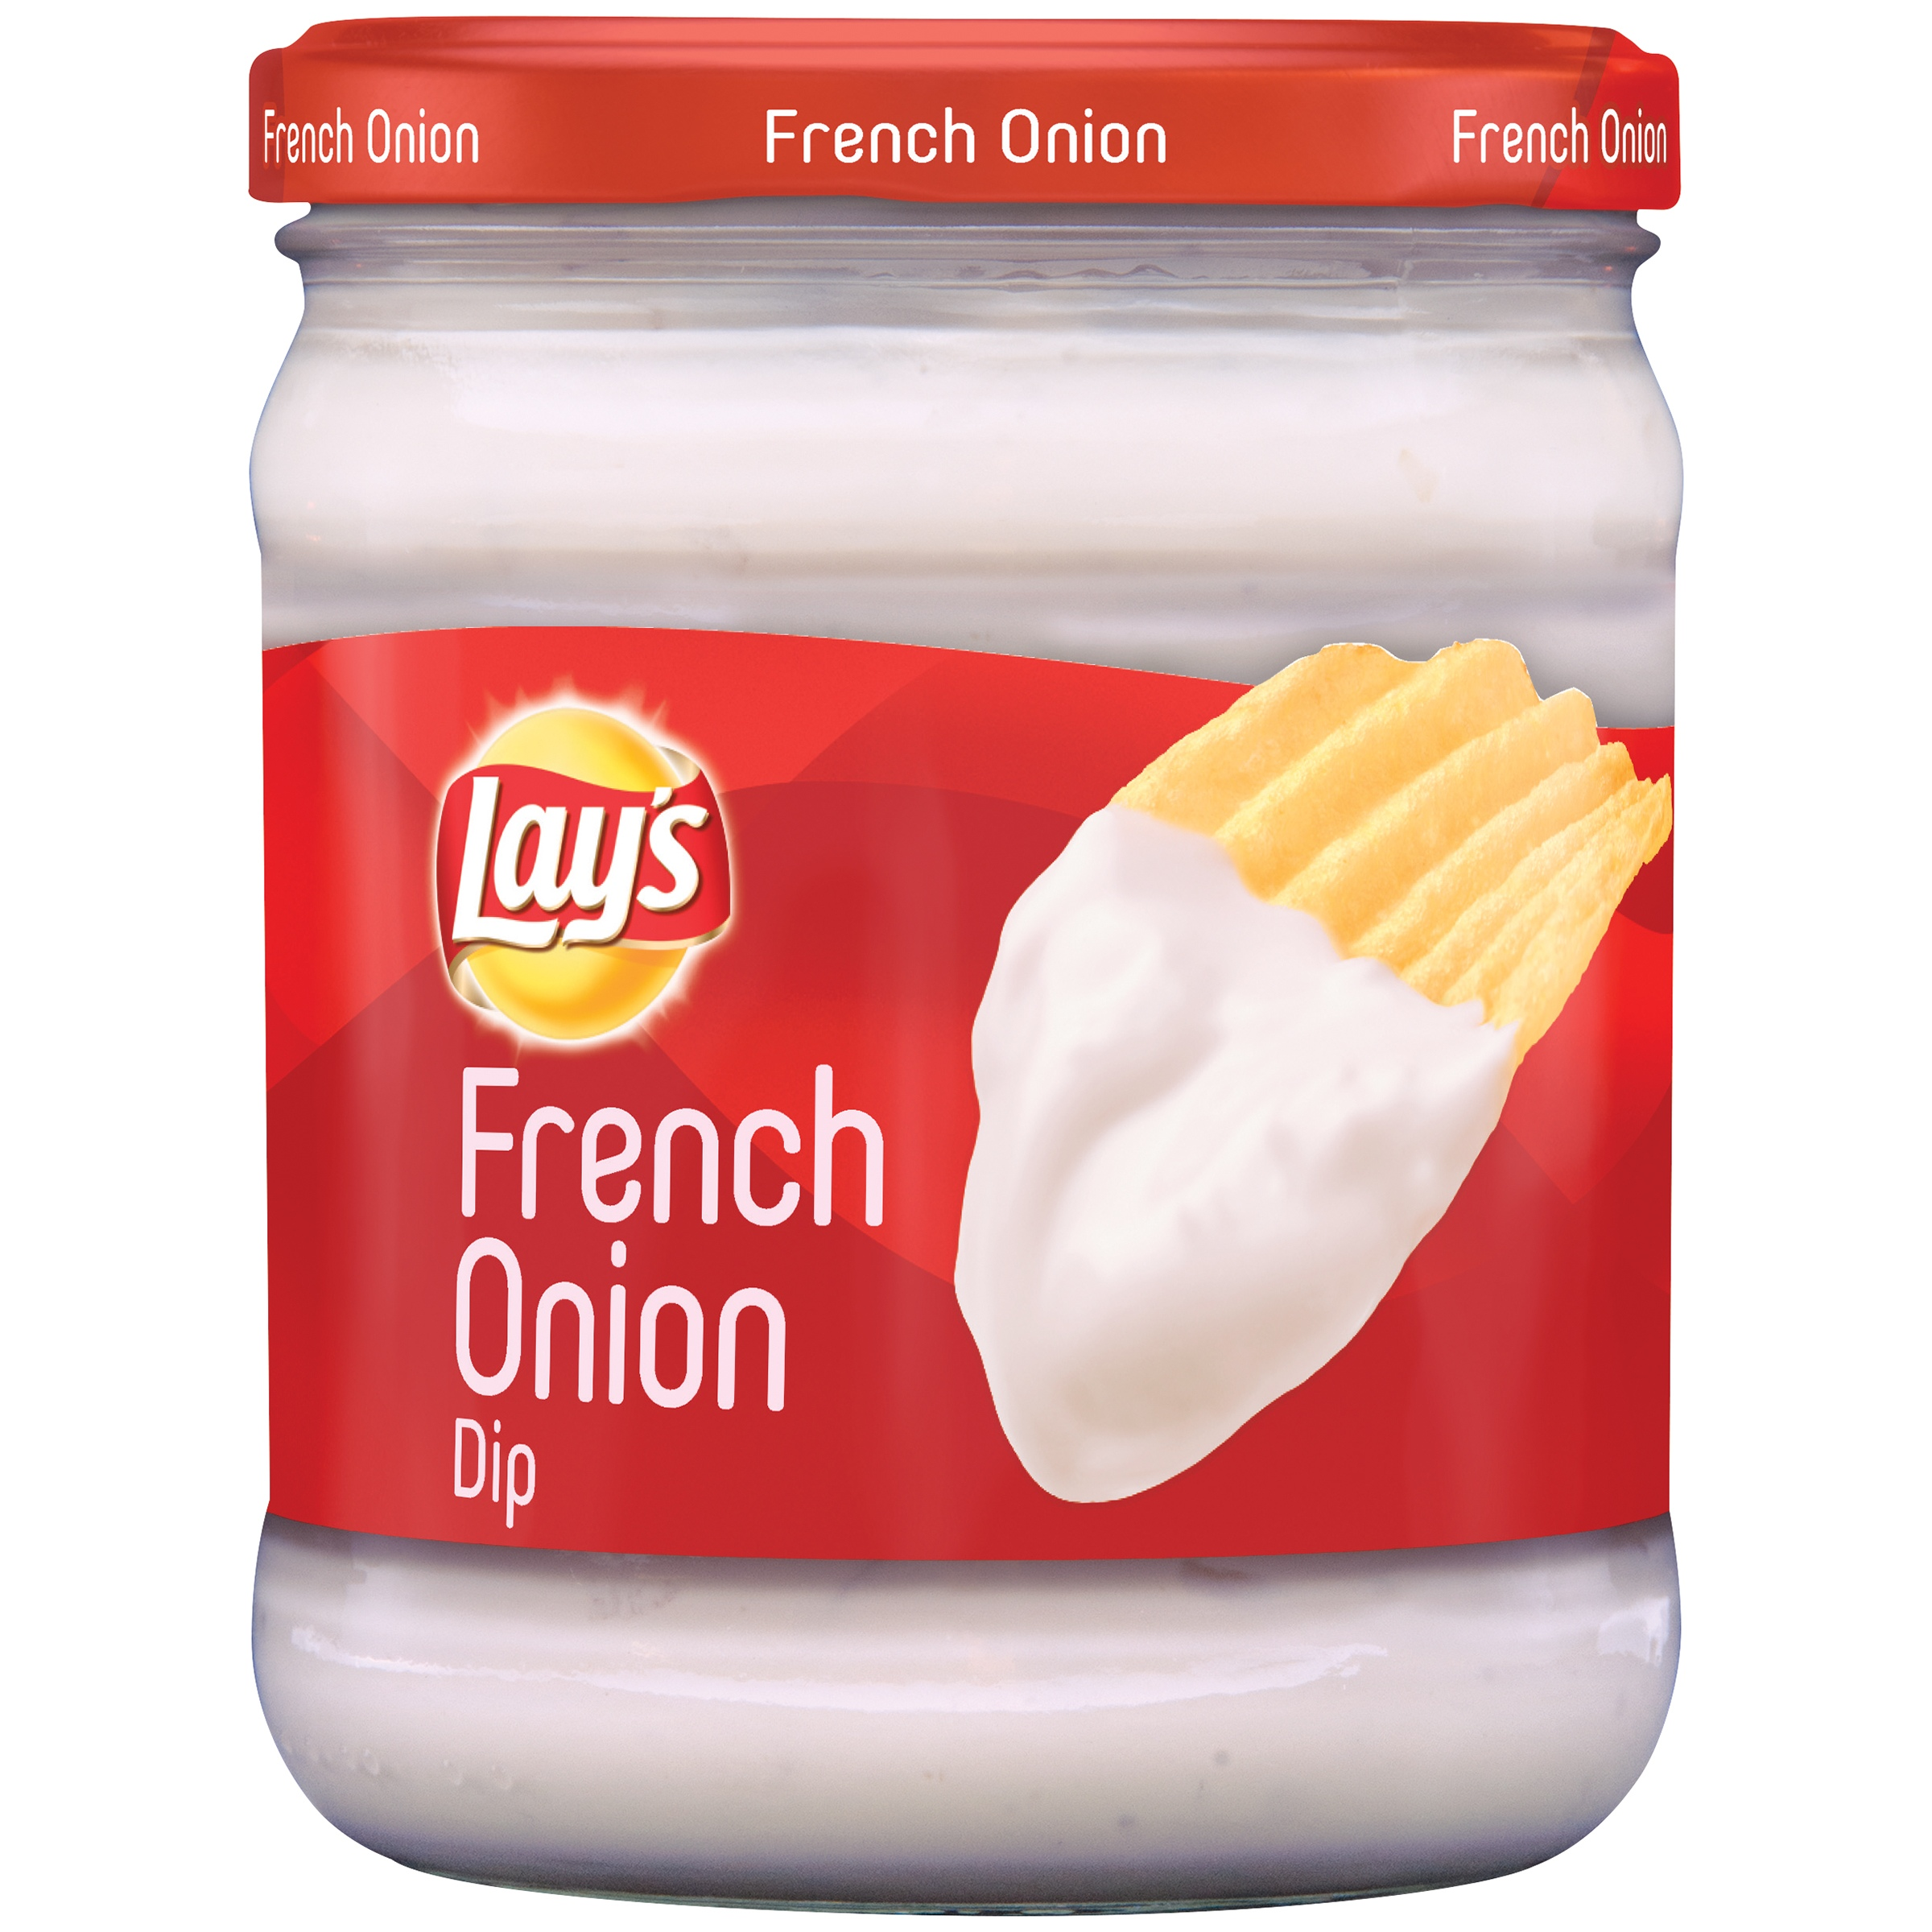 Lay's French Onion Dip, 15 oz. Jar